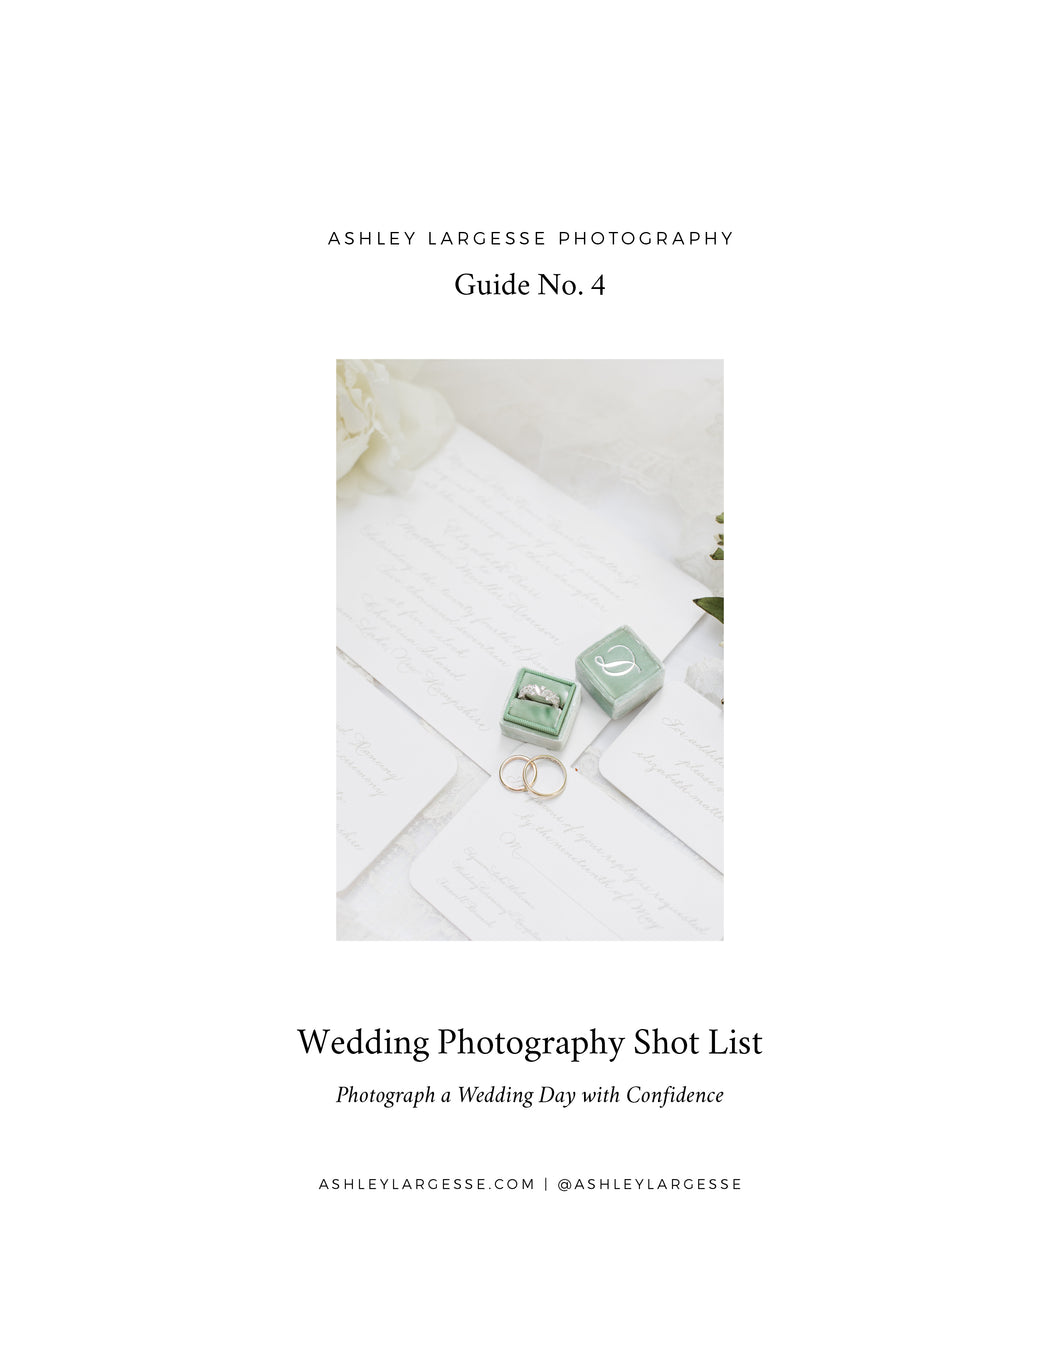 A Wedding Photography Shot List